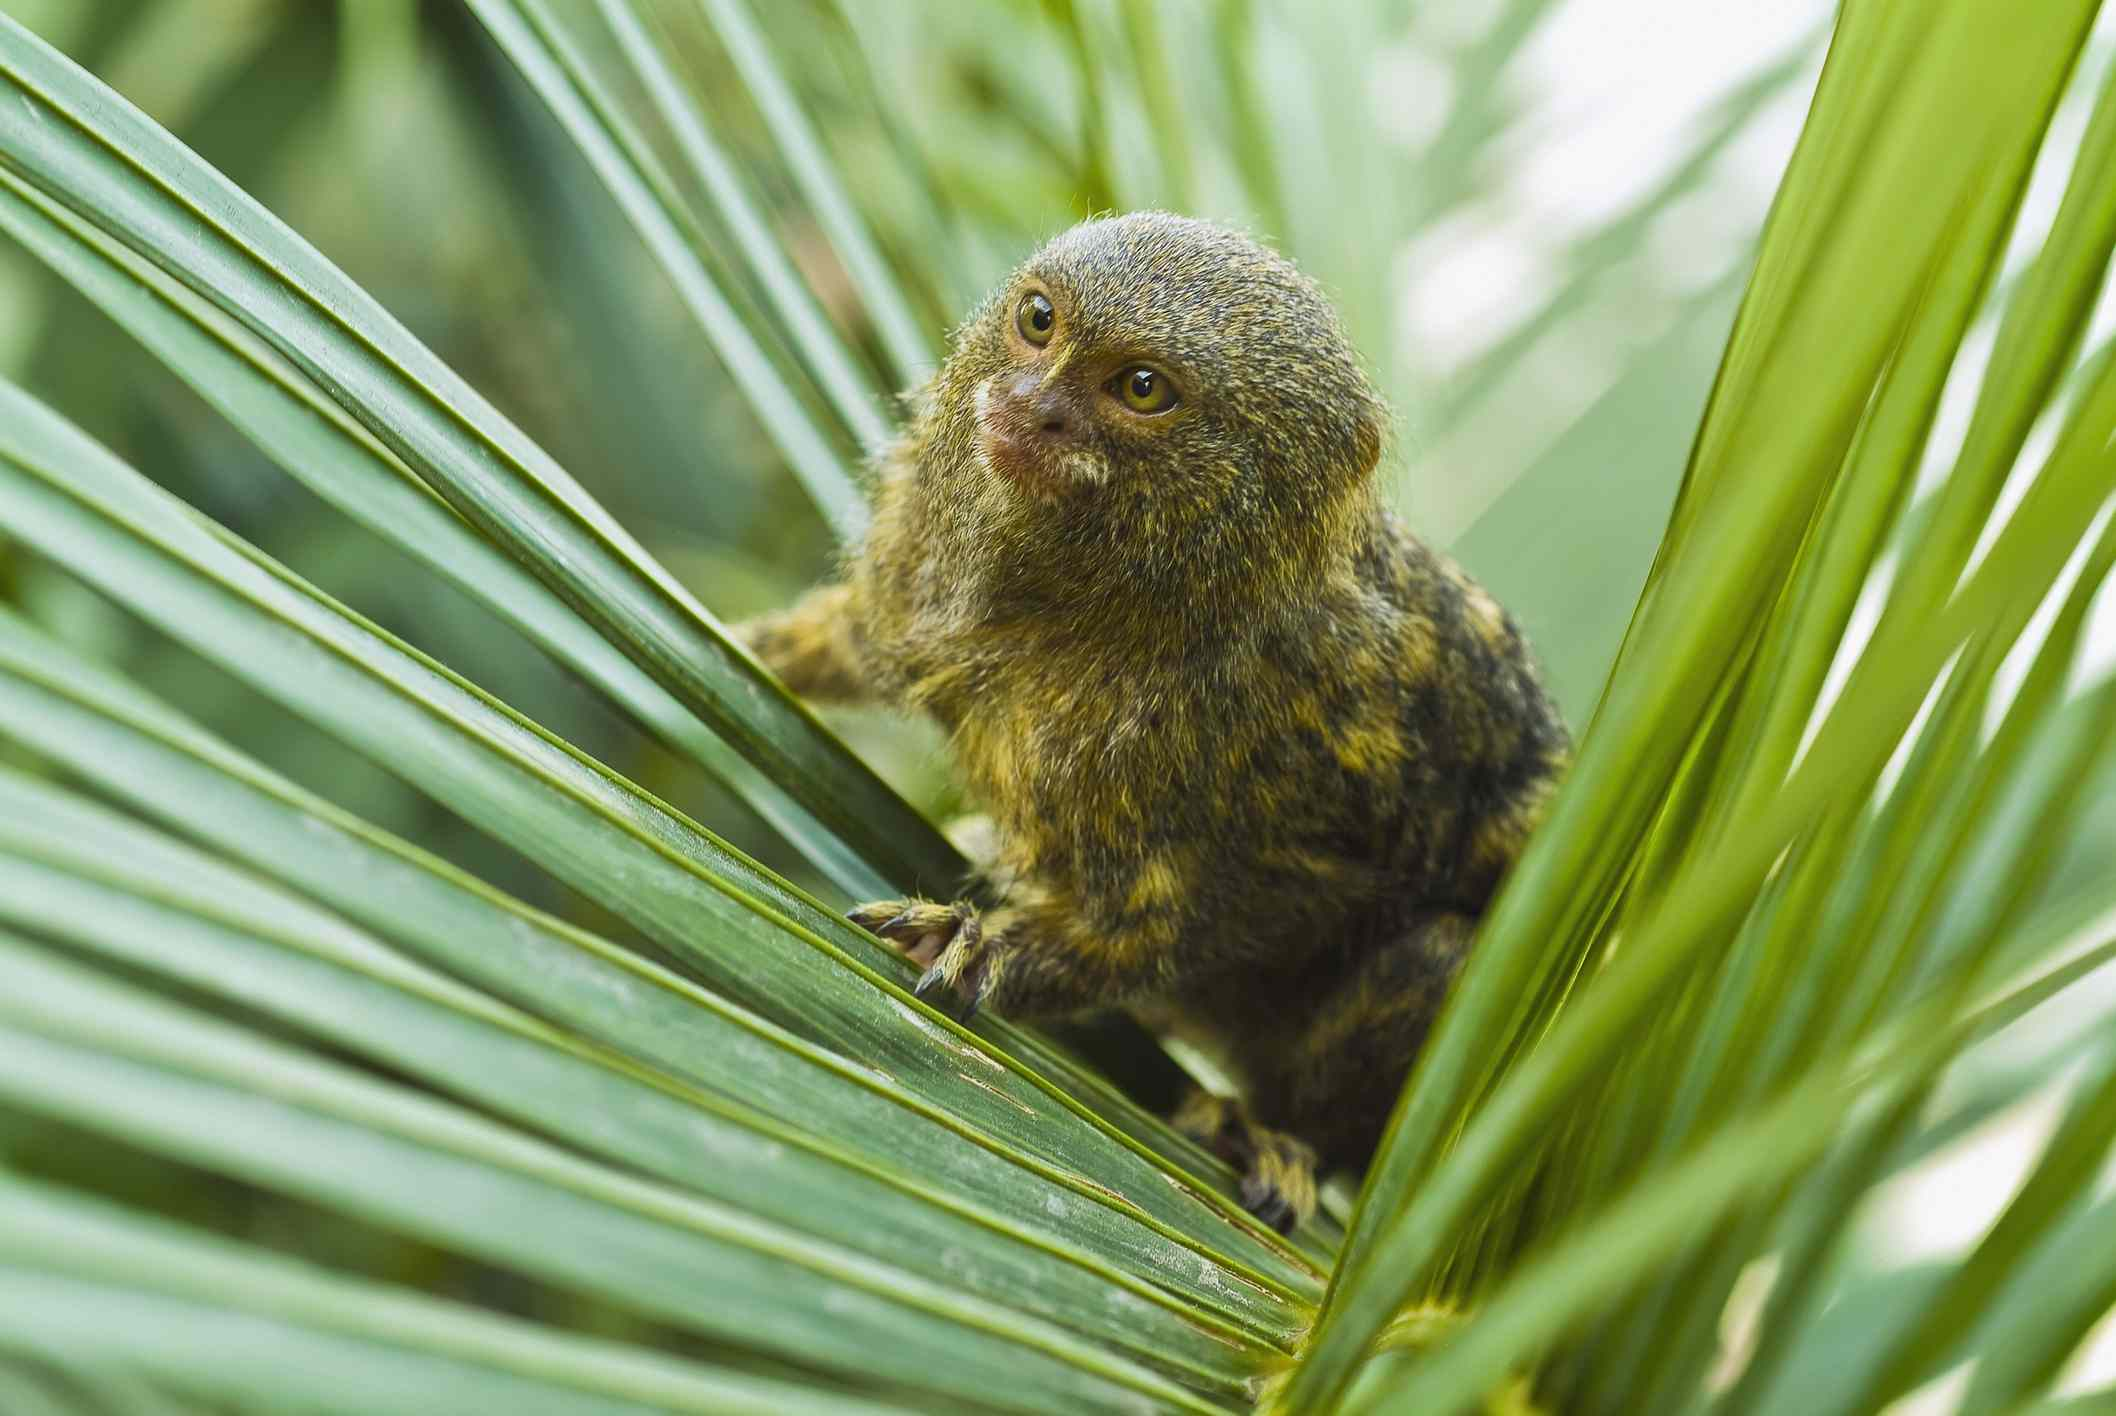 pygmy marmoset in a palm frond